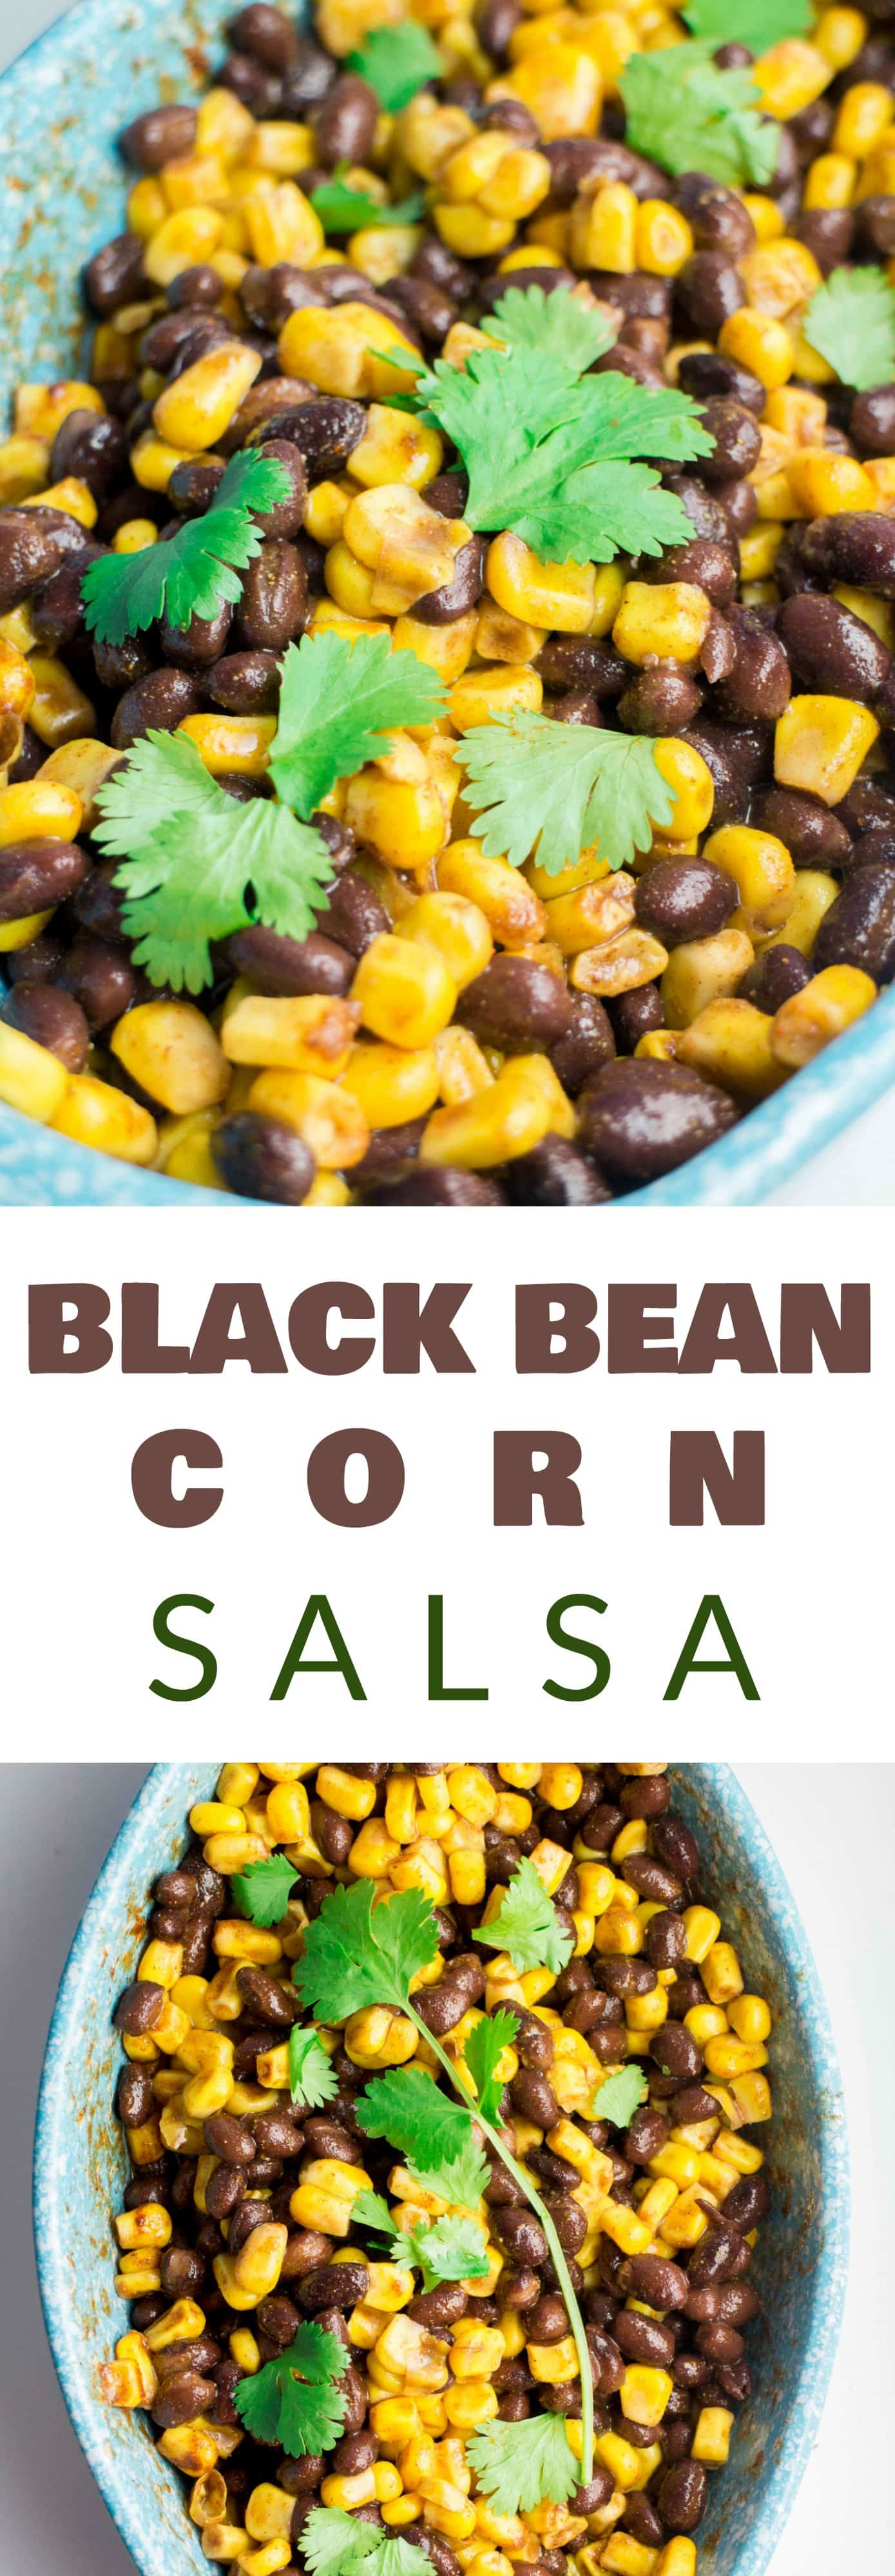 MEXICAN BLACK BEAN and CORN SALSA that takes 2 MINUTES to make! This easy homemade salsa recipe is full of fresh Mexican flavor! Eat this healthy dip with chips or serve as a salad.